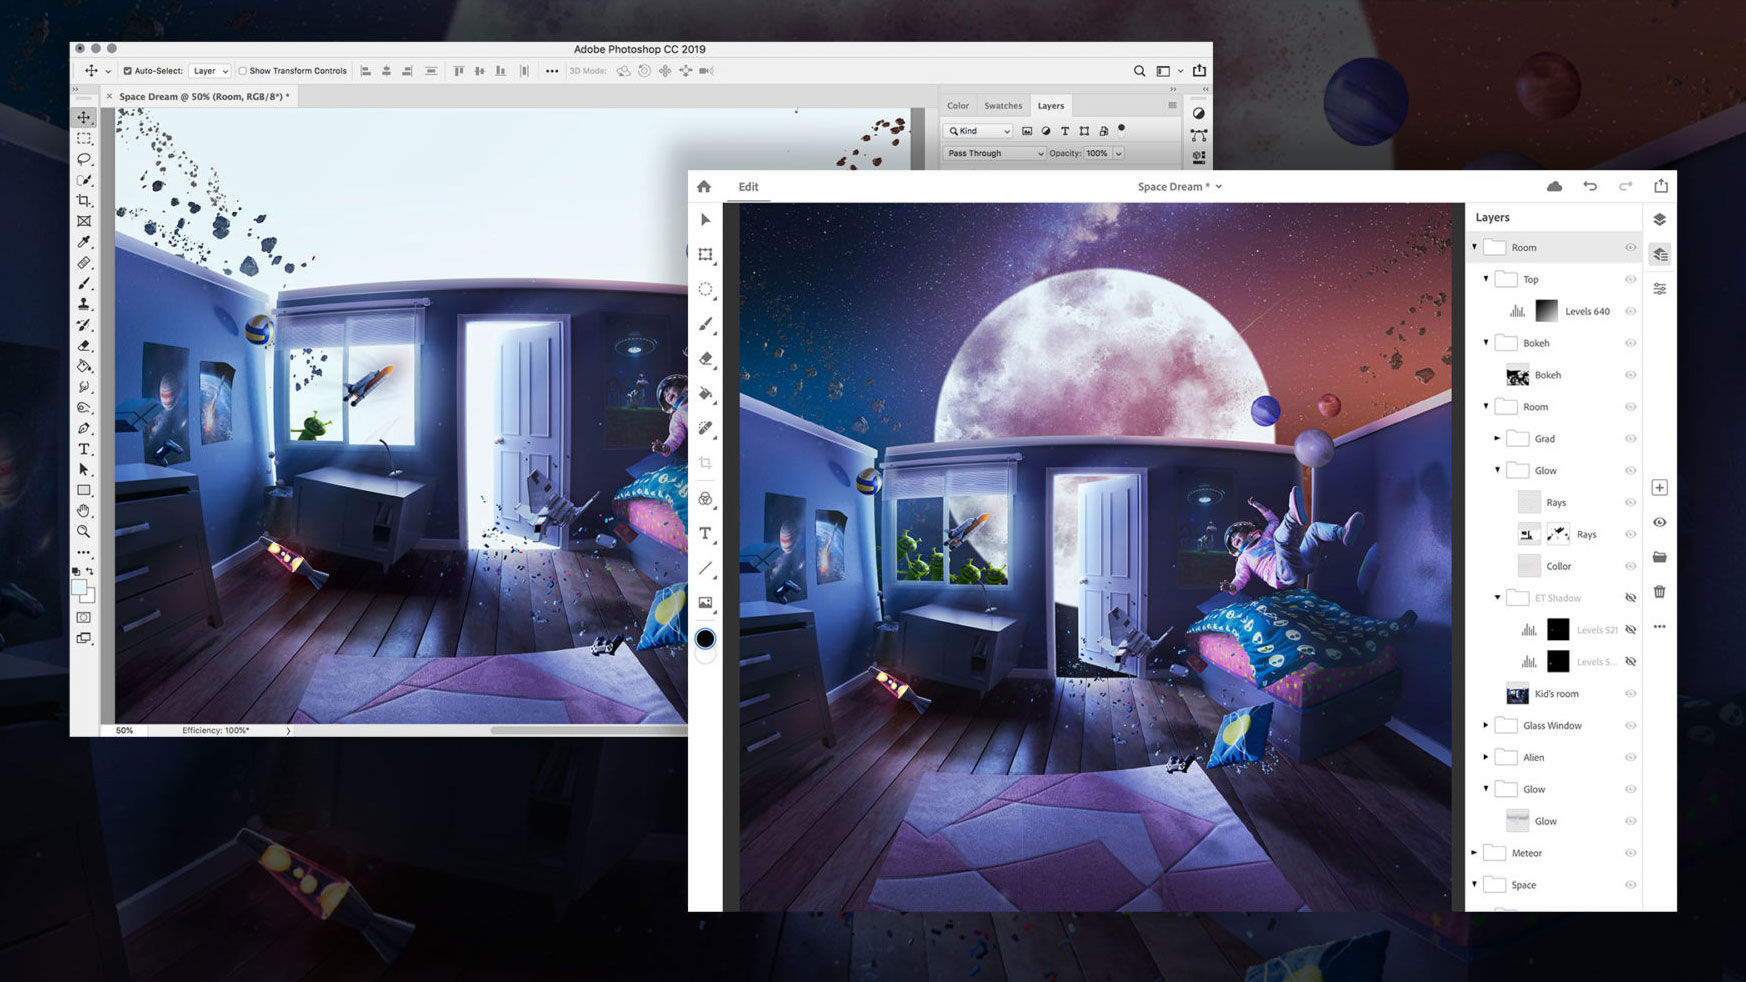 Adobe accepting applications to beta test Photoshop CC on